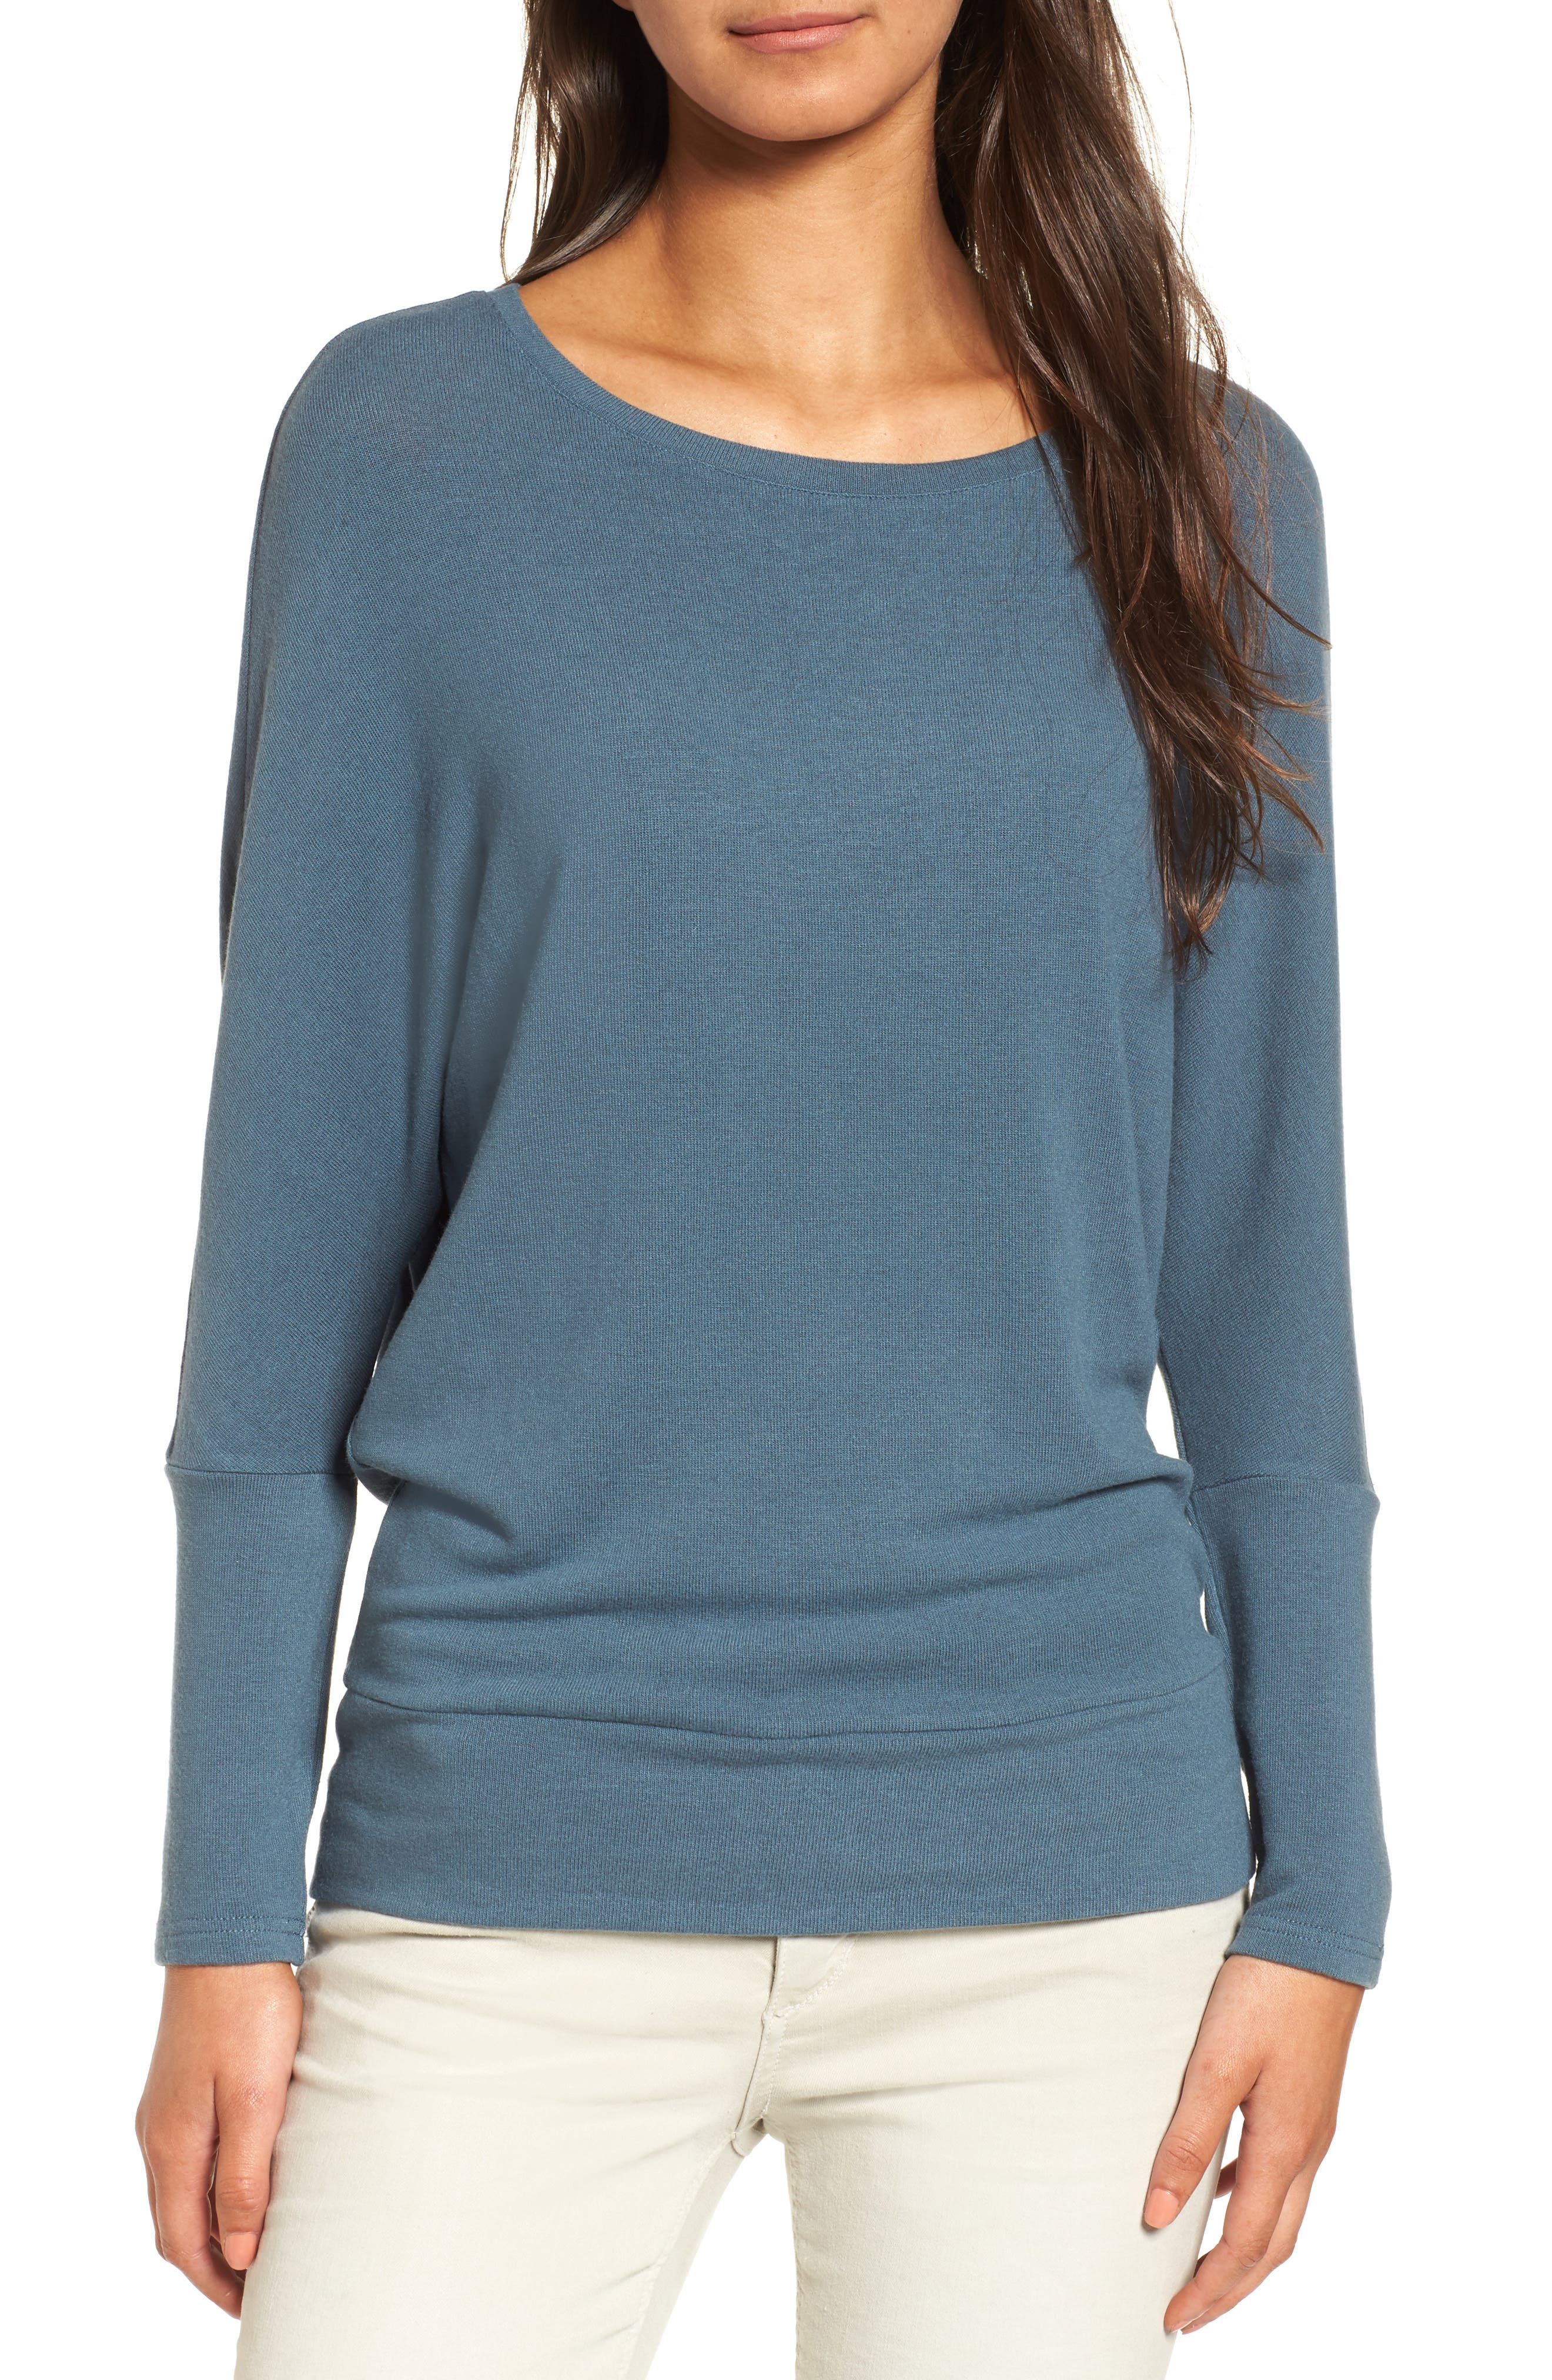 cupcakes and cashmere 'Chey' Dolman Sleeve Top